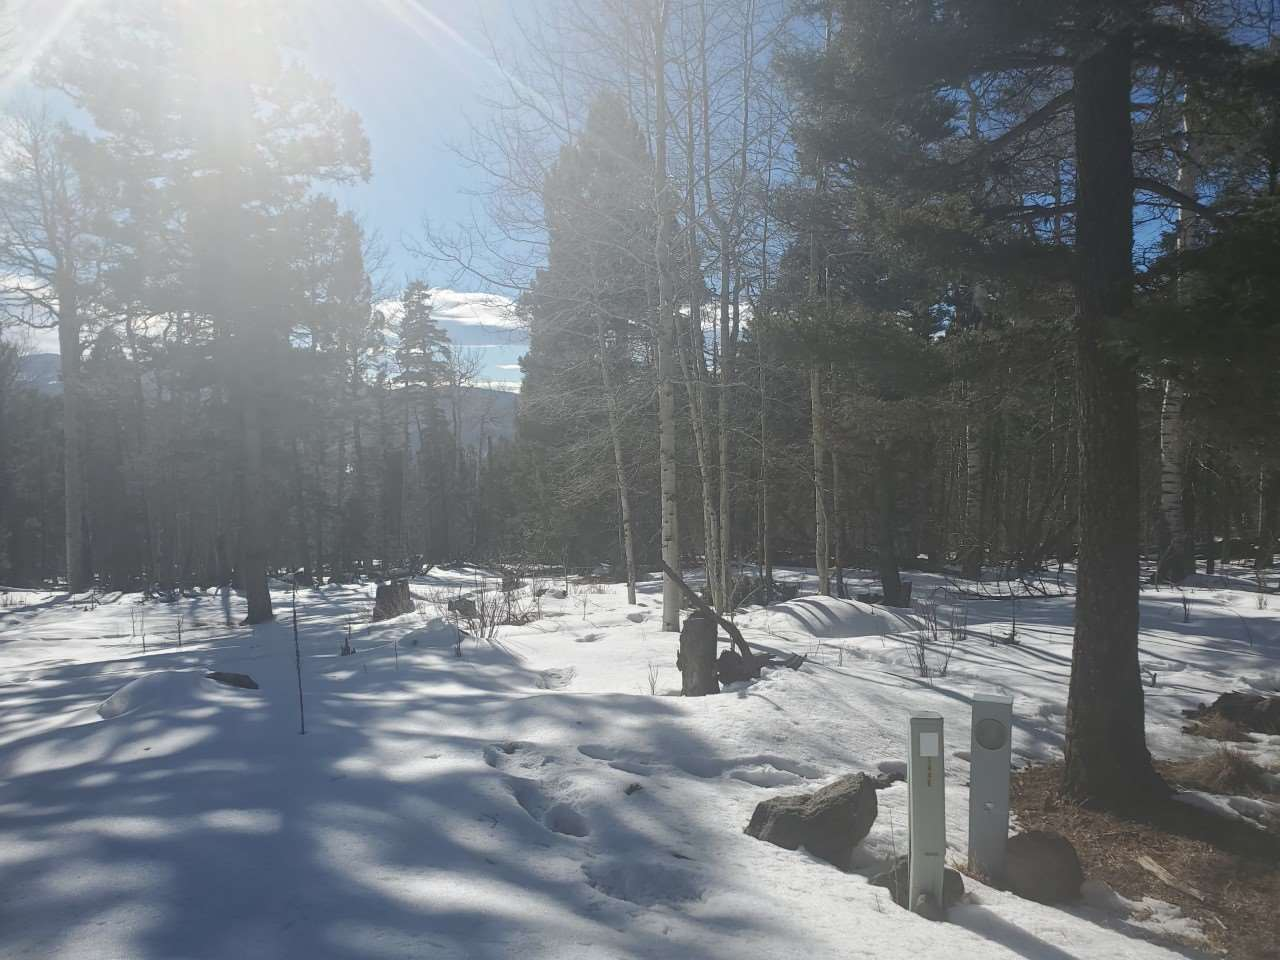 Lot 1446 Sunrise Overlook, Angel Fire, NM 87710